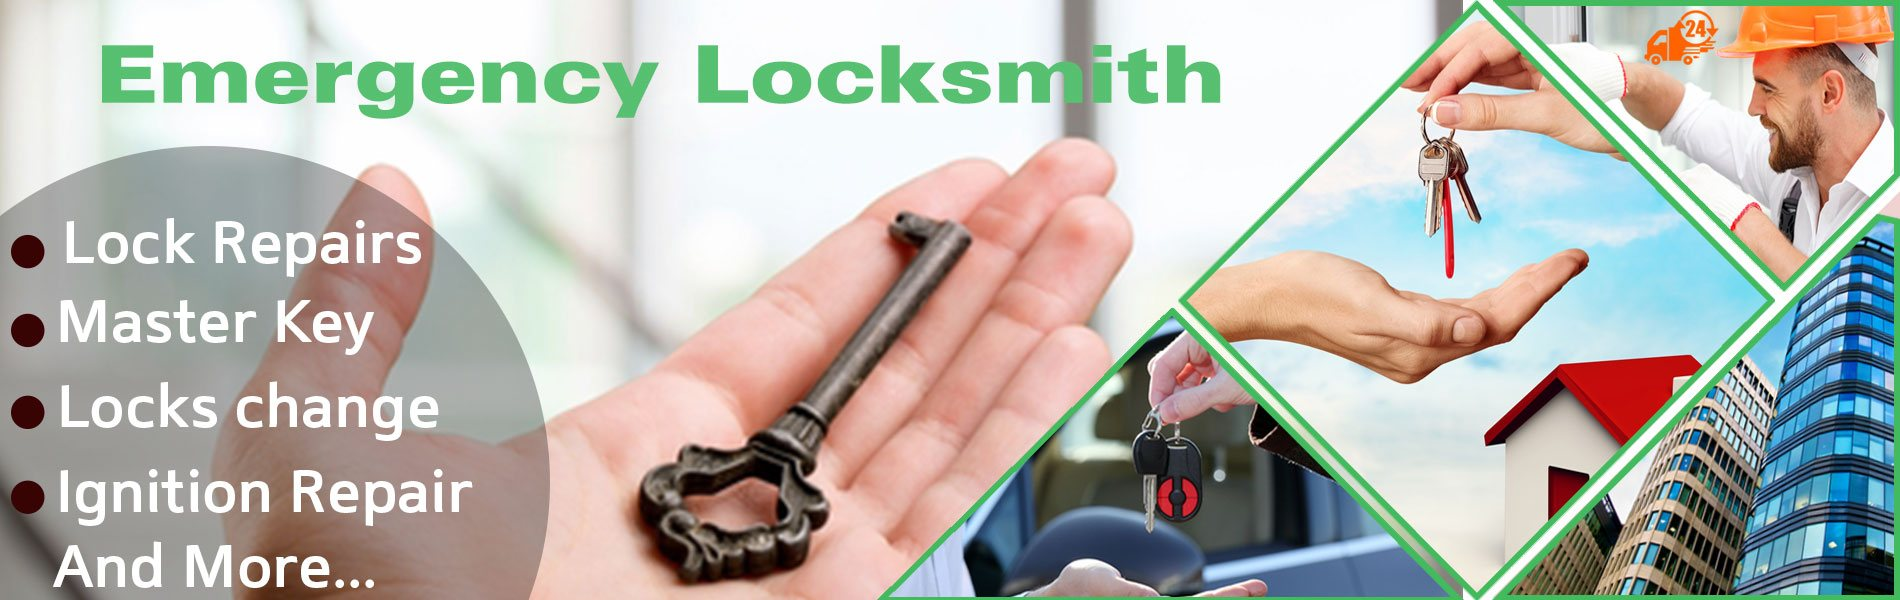 Lock Safe Services Cleveland, OH 216-258-0653